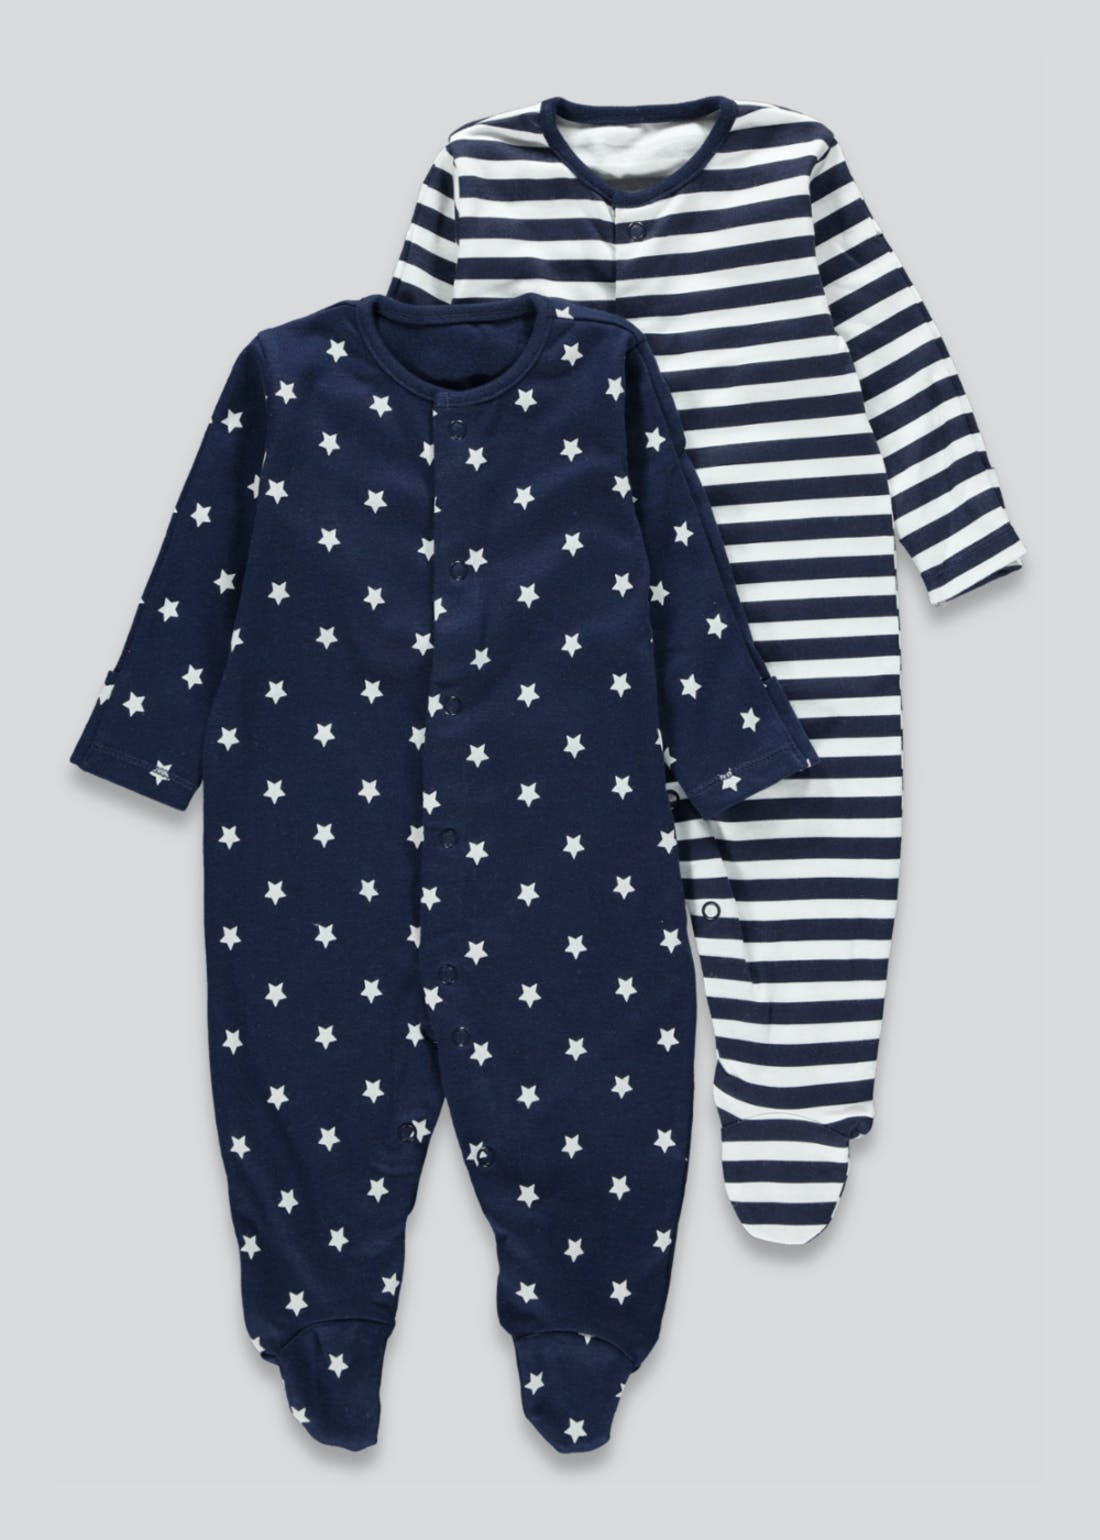 Unisex 2 Pack Stars & Stripes Baby Grows (Newborn-23mths)